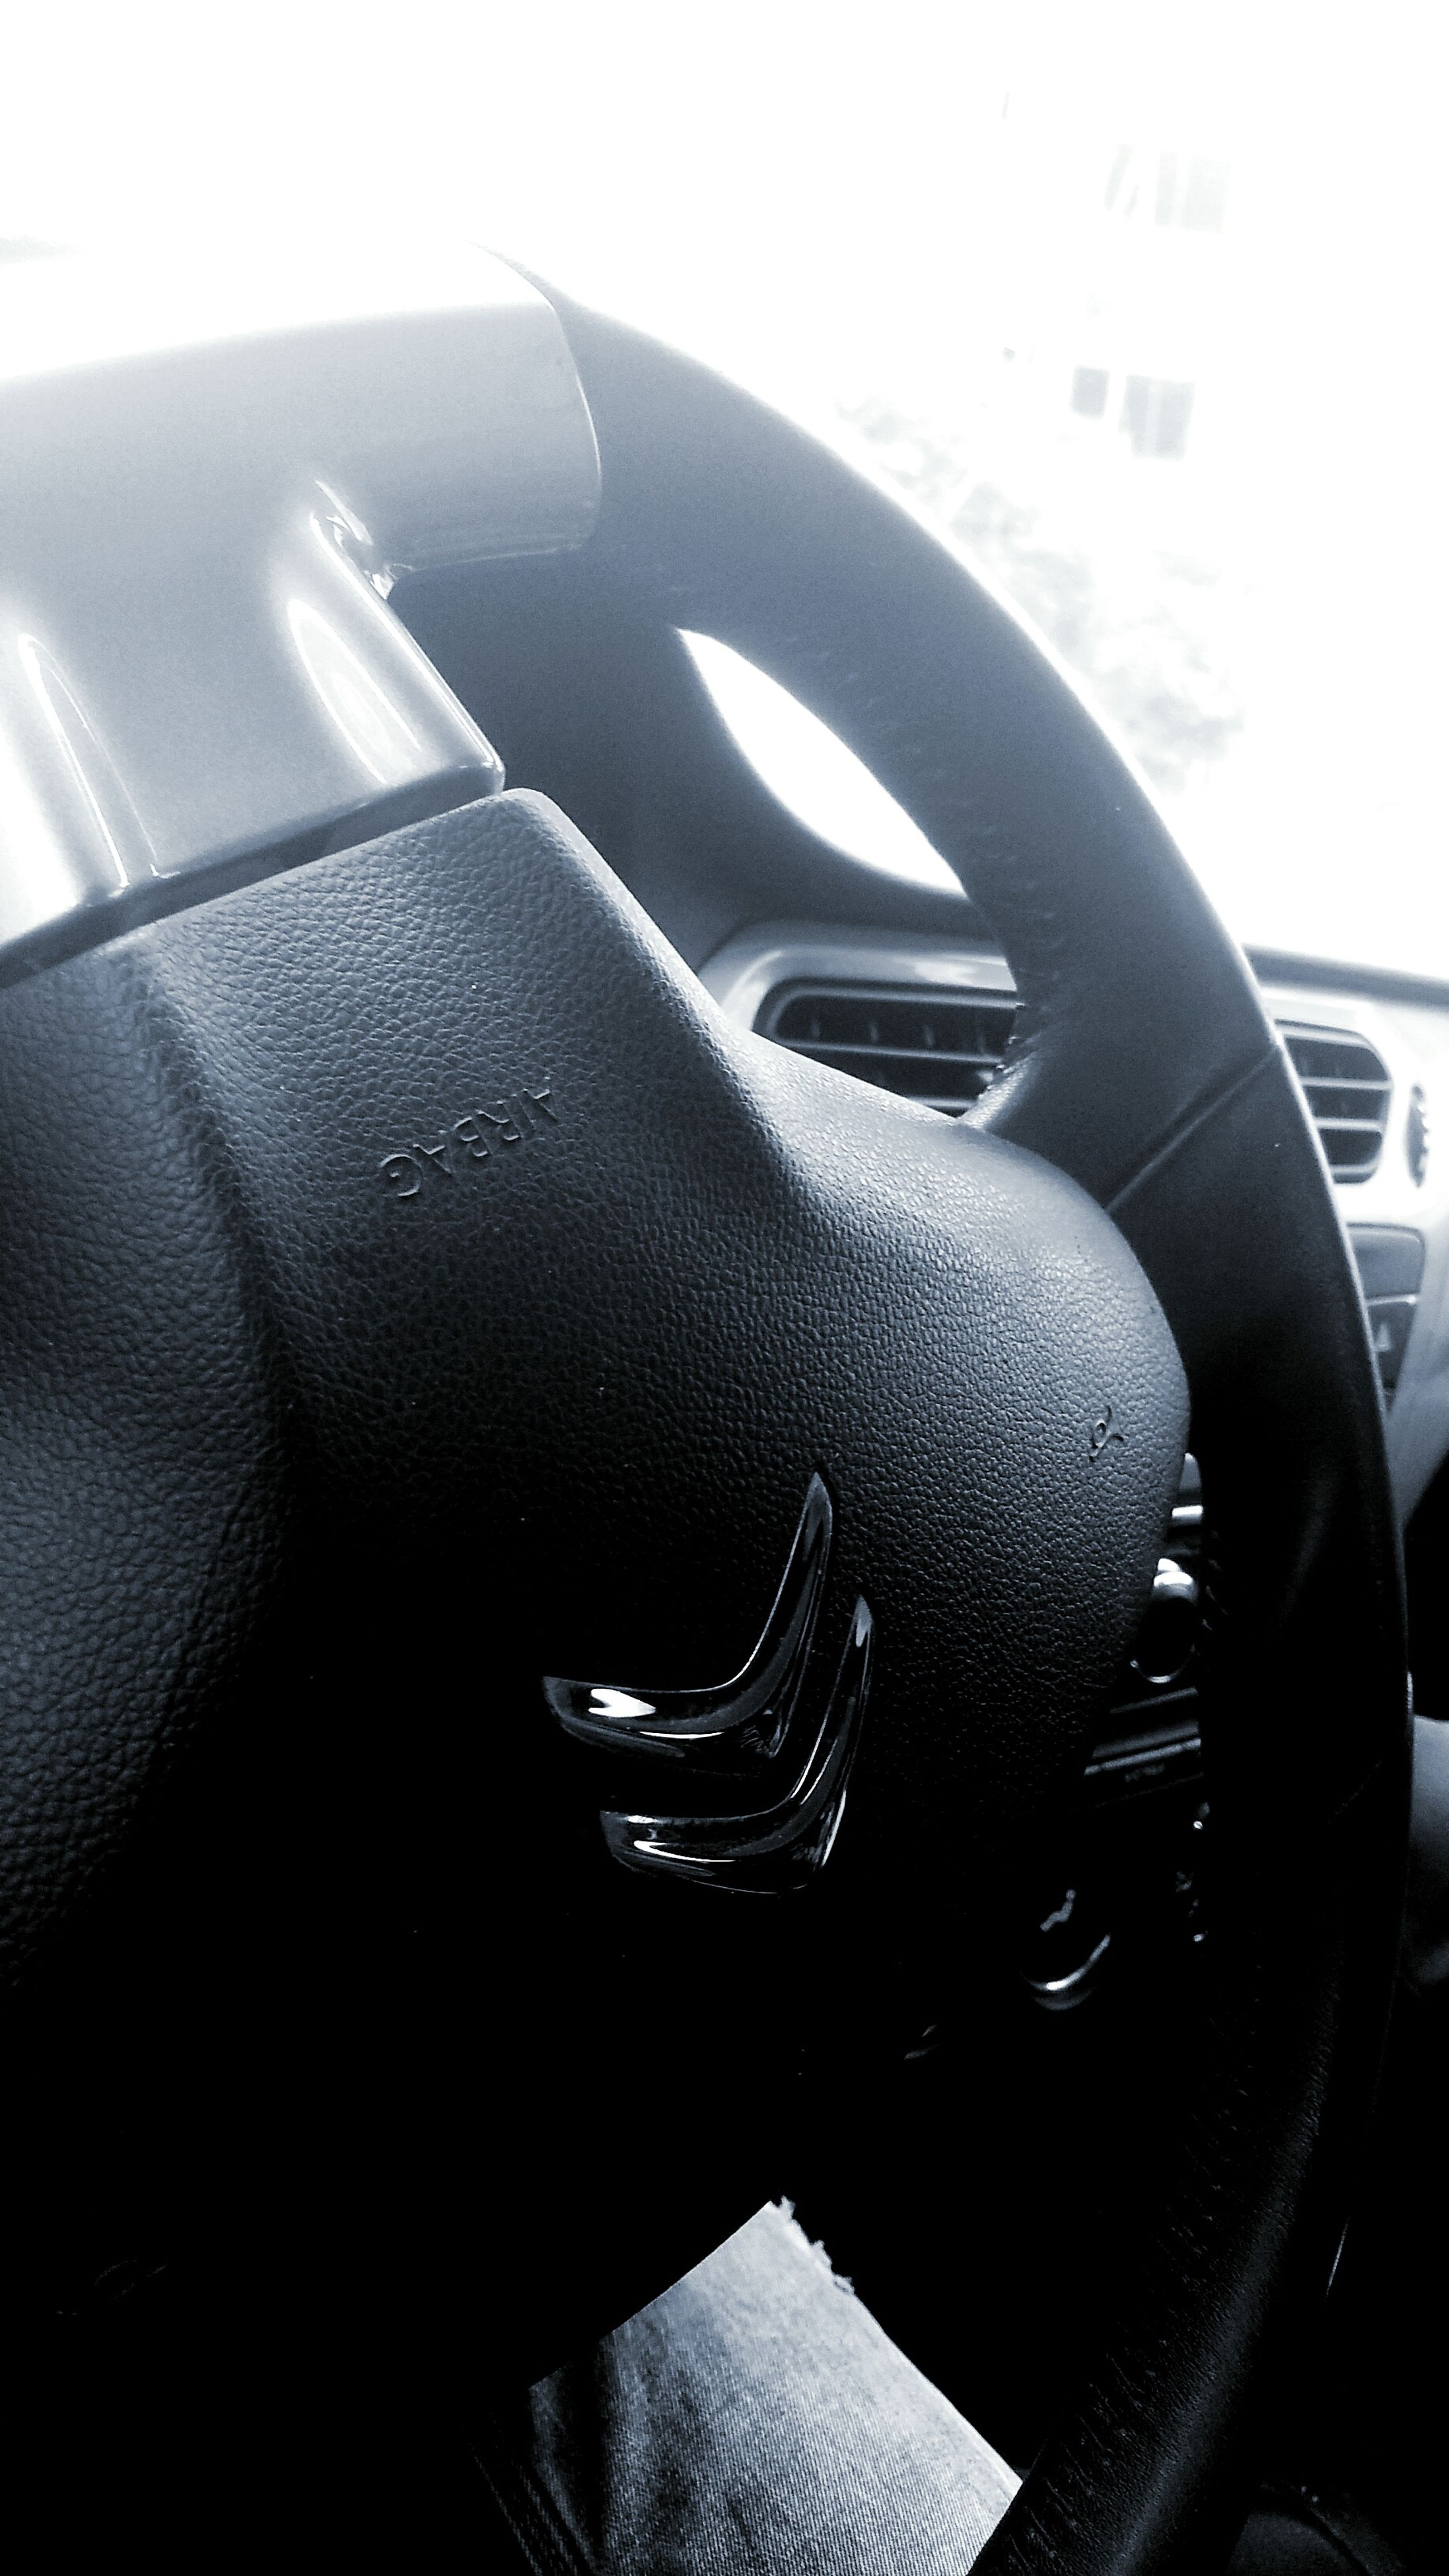 mode of transport, transportation, land vehicle, vehicle interior, car, car interior, part of, close-up, cropped, indoors, travel, steering wheel, windshield, vehicle seat, one person, vehicle part, reflection, glass - material, airplane, journey